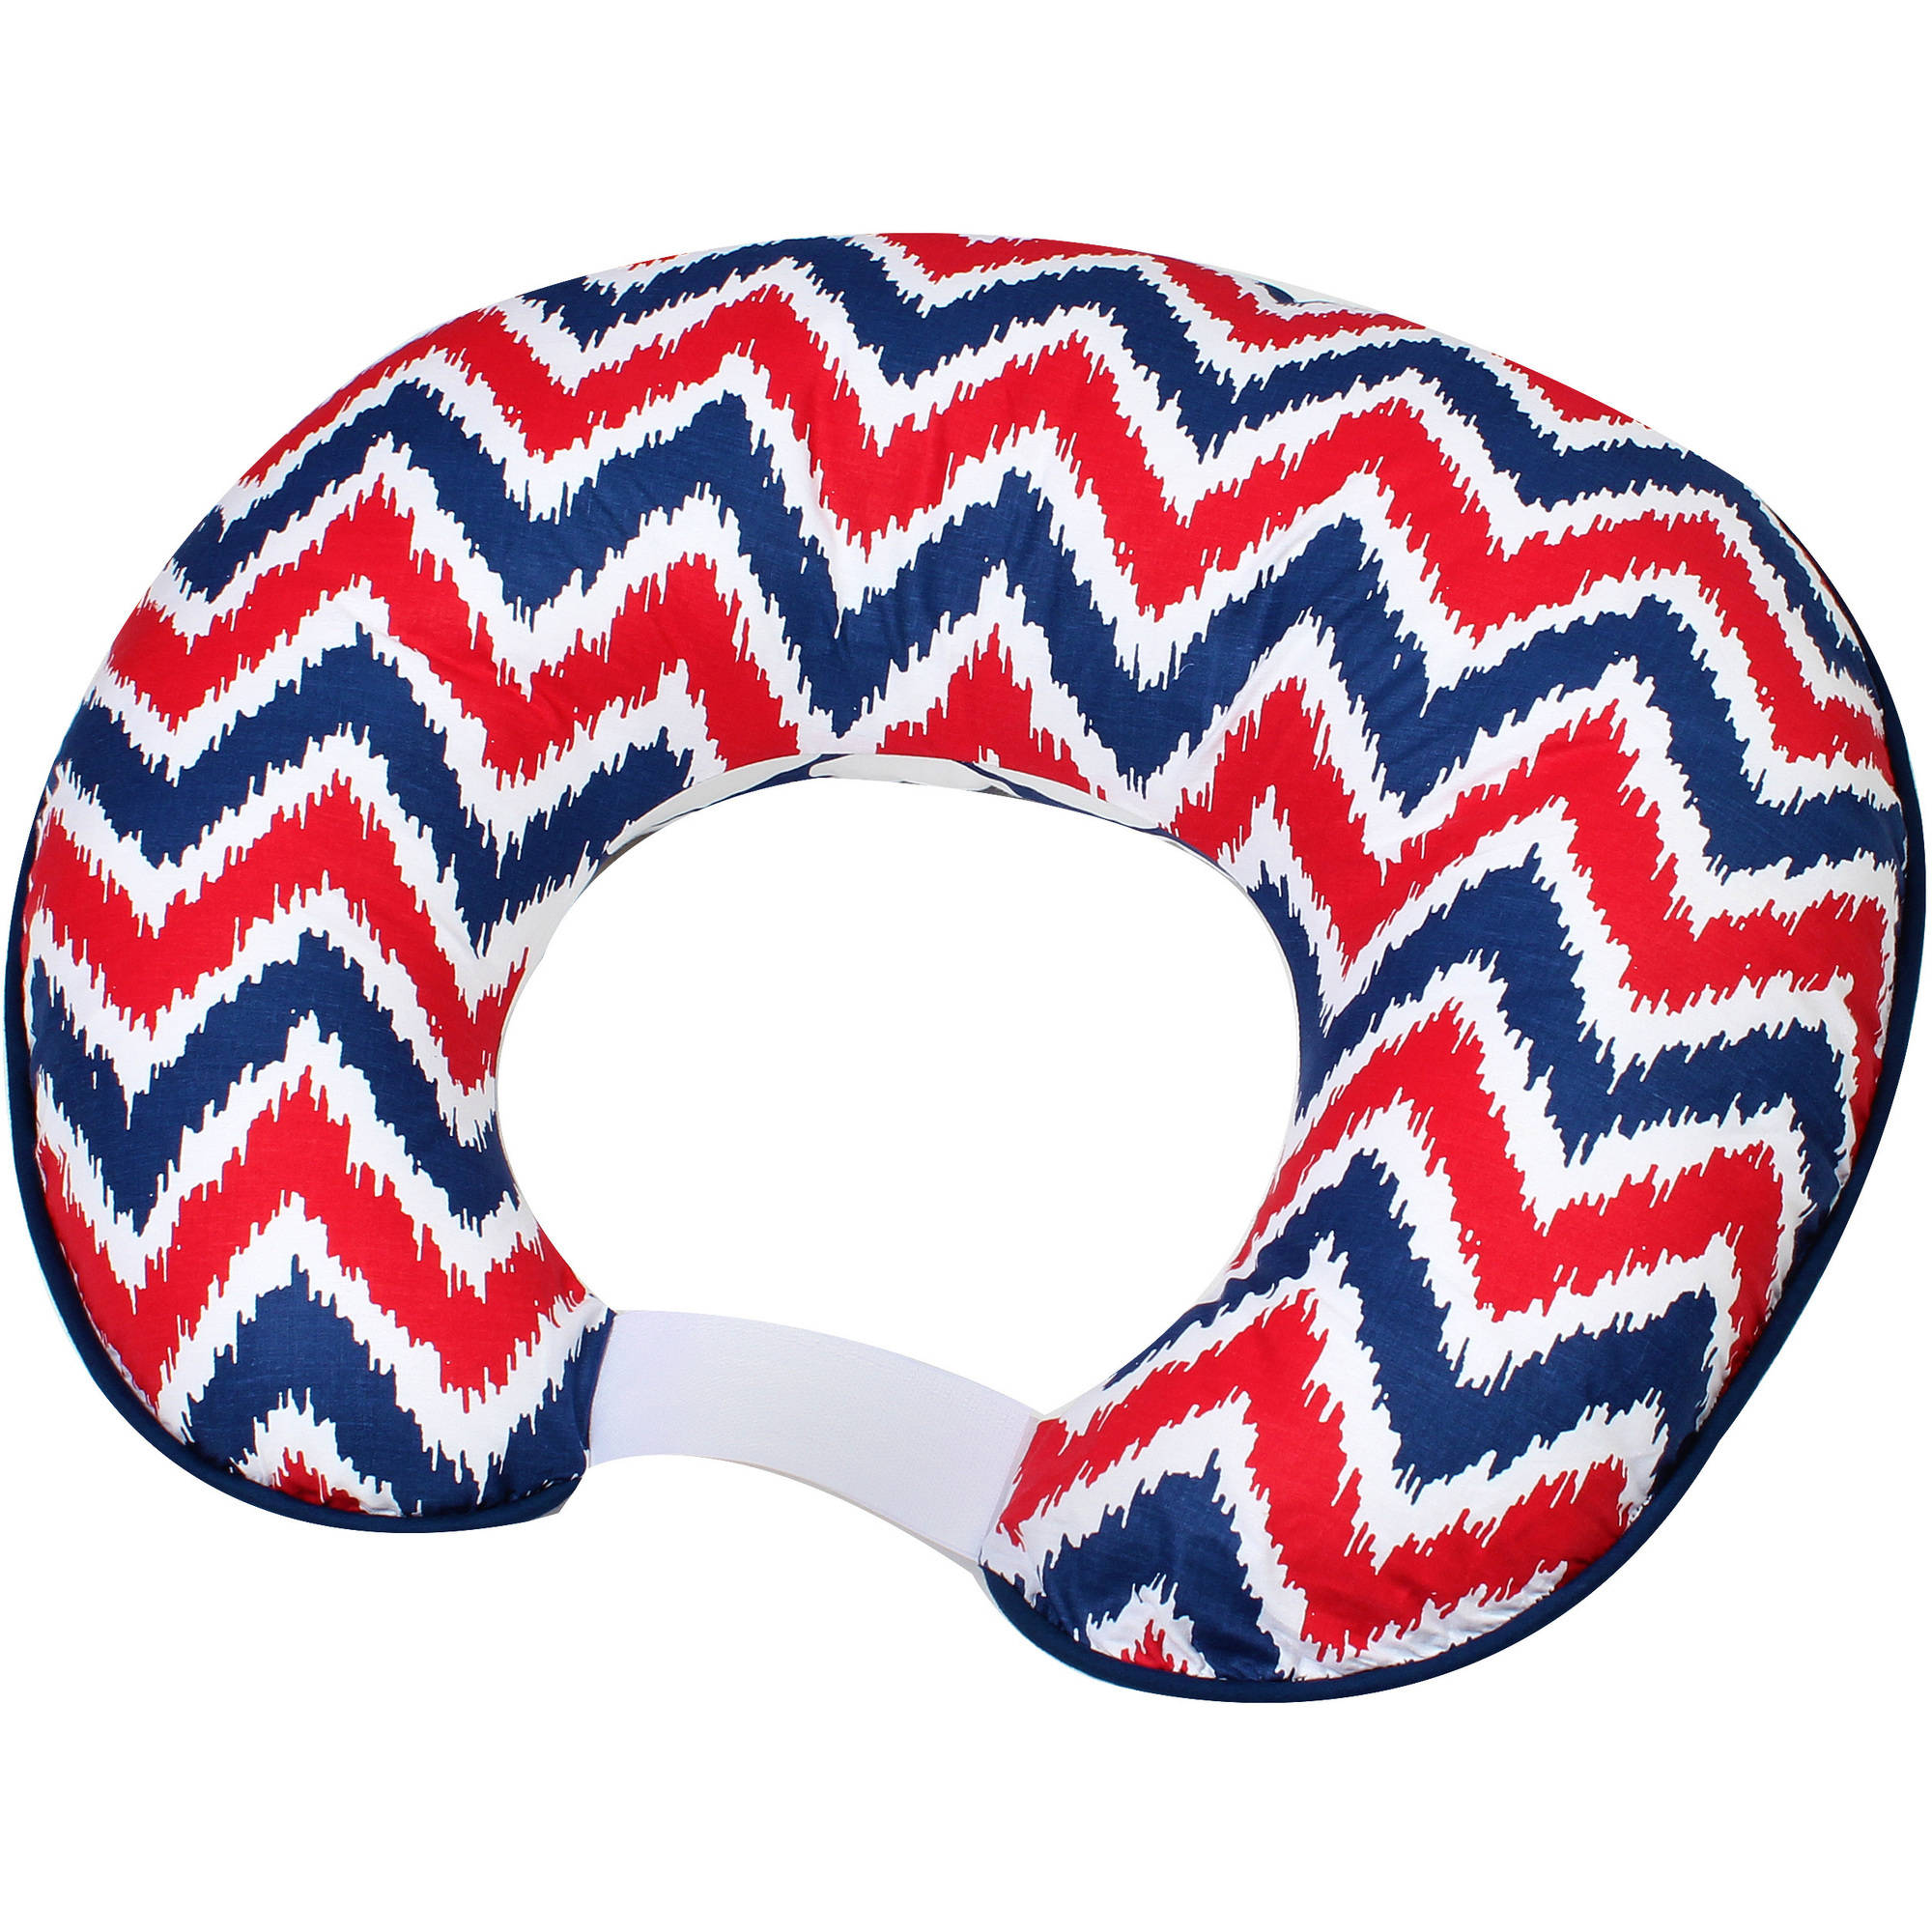 Bacati - MixNMatch Navy/Red Nursing Pillow Cover fits perfectly only Bacati - Hugster Nursing Pillow